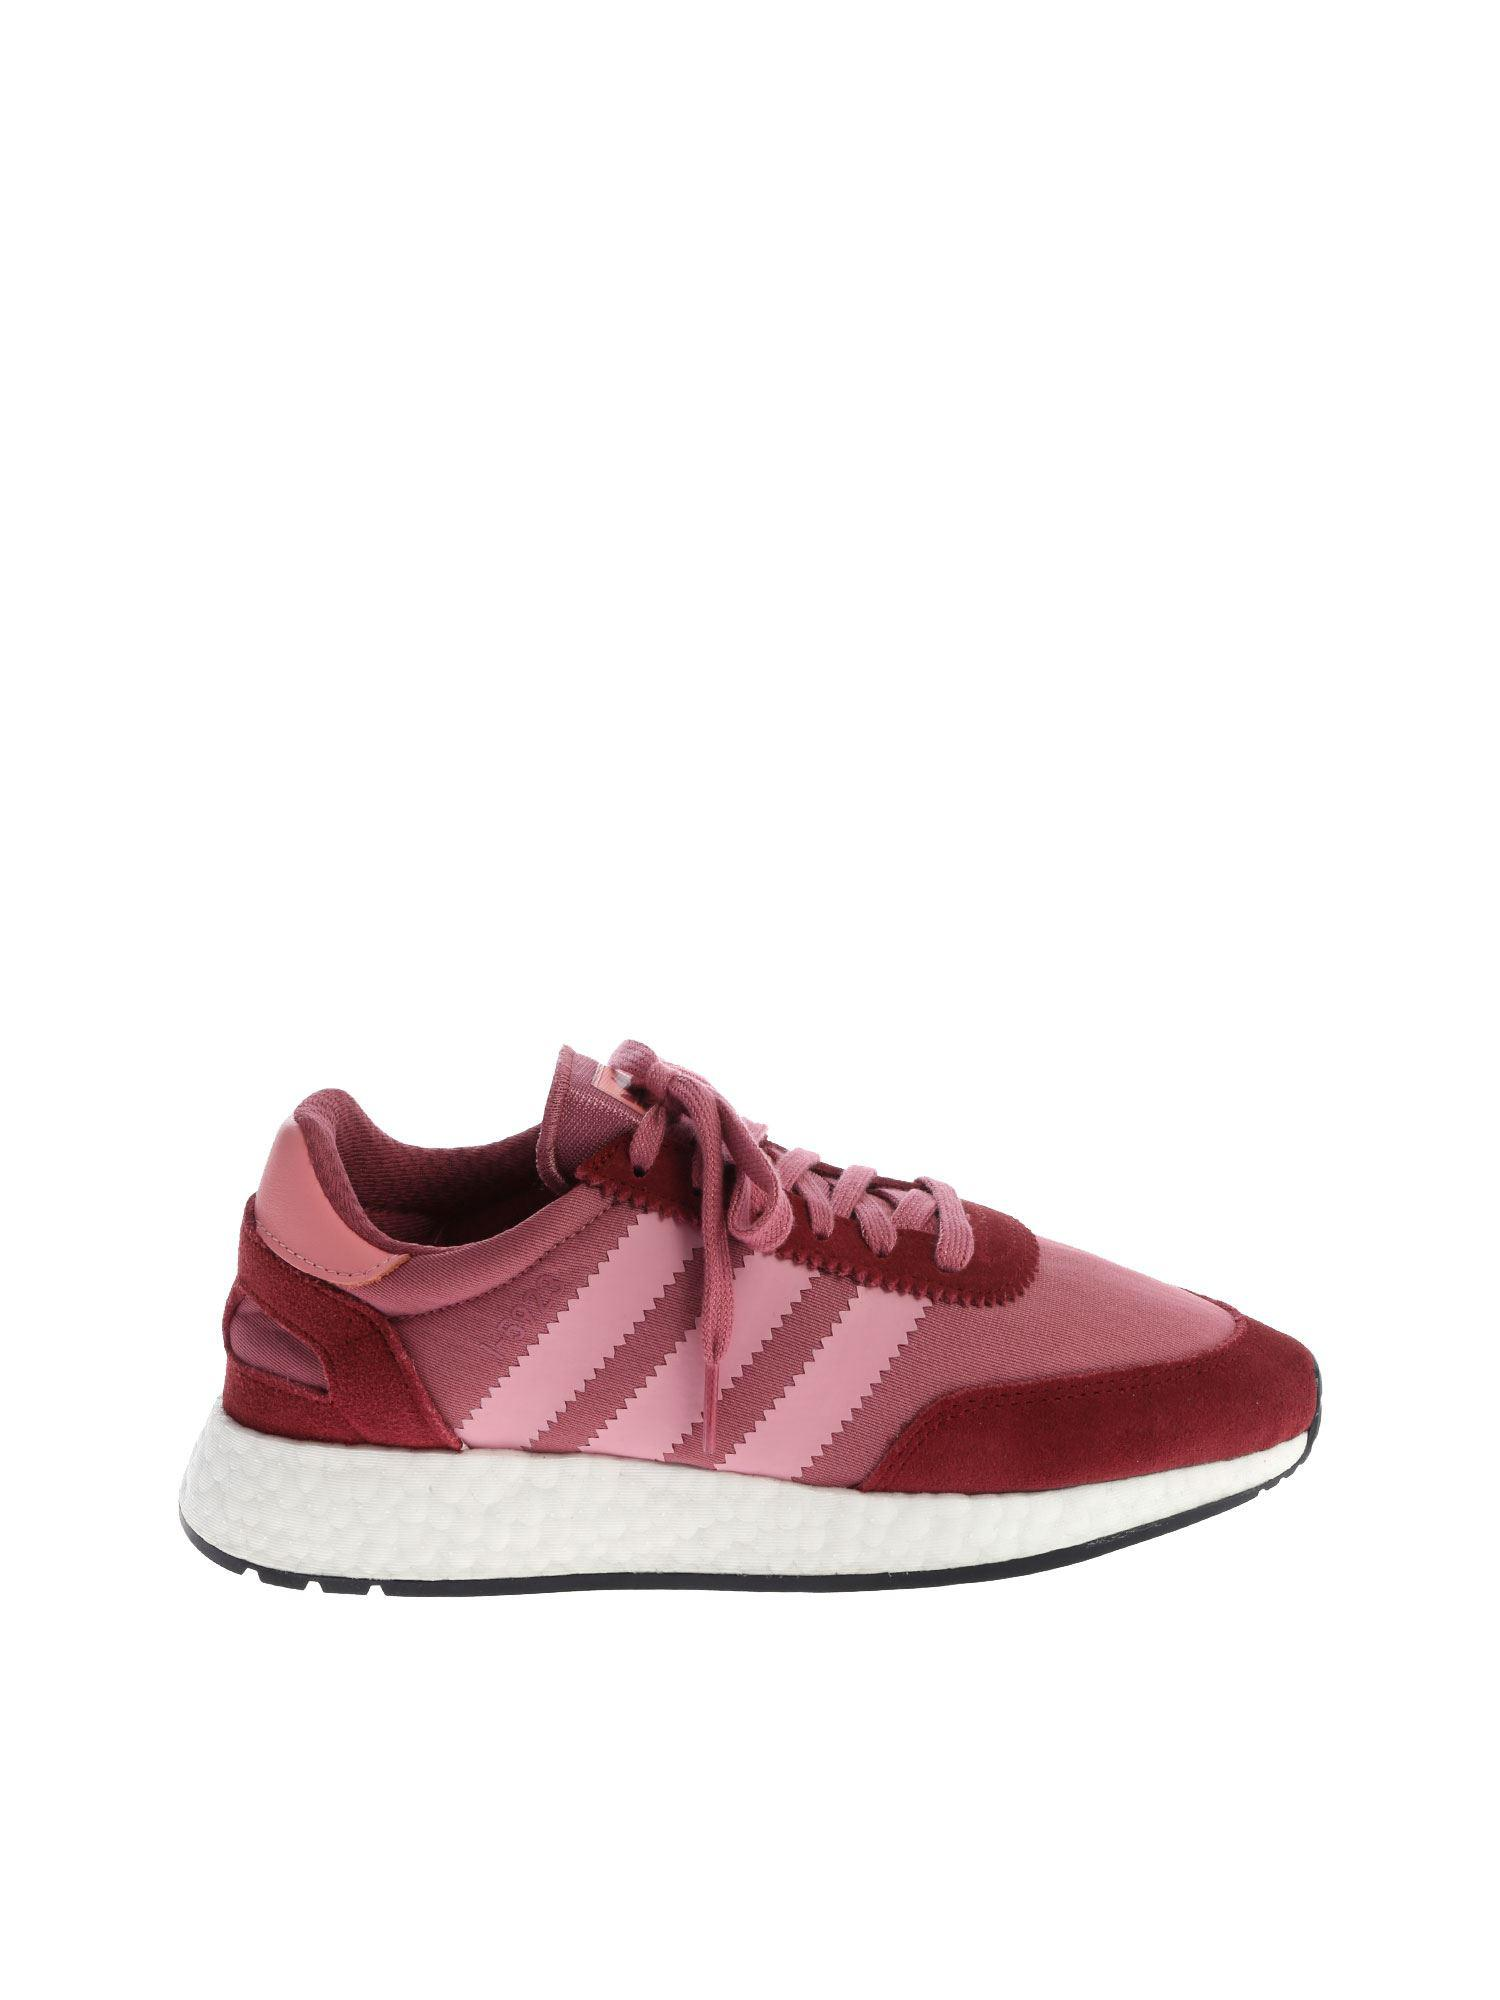 low priced 5e053 69a15 Adidas Originals - Pink